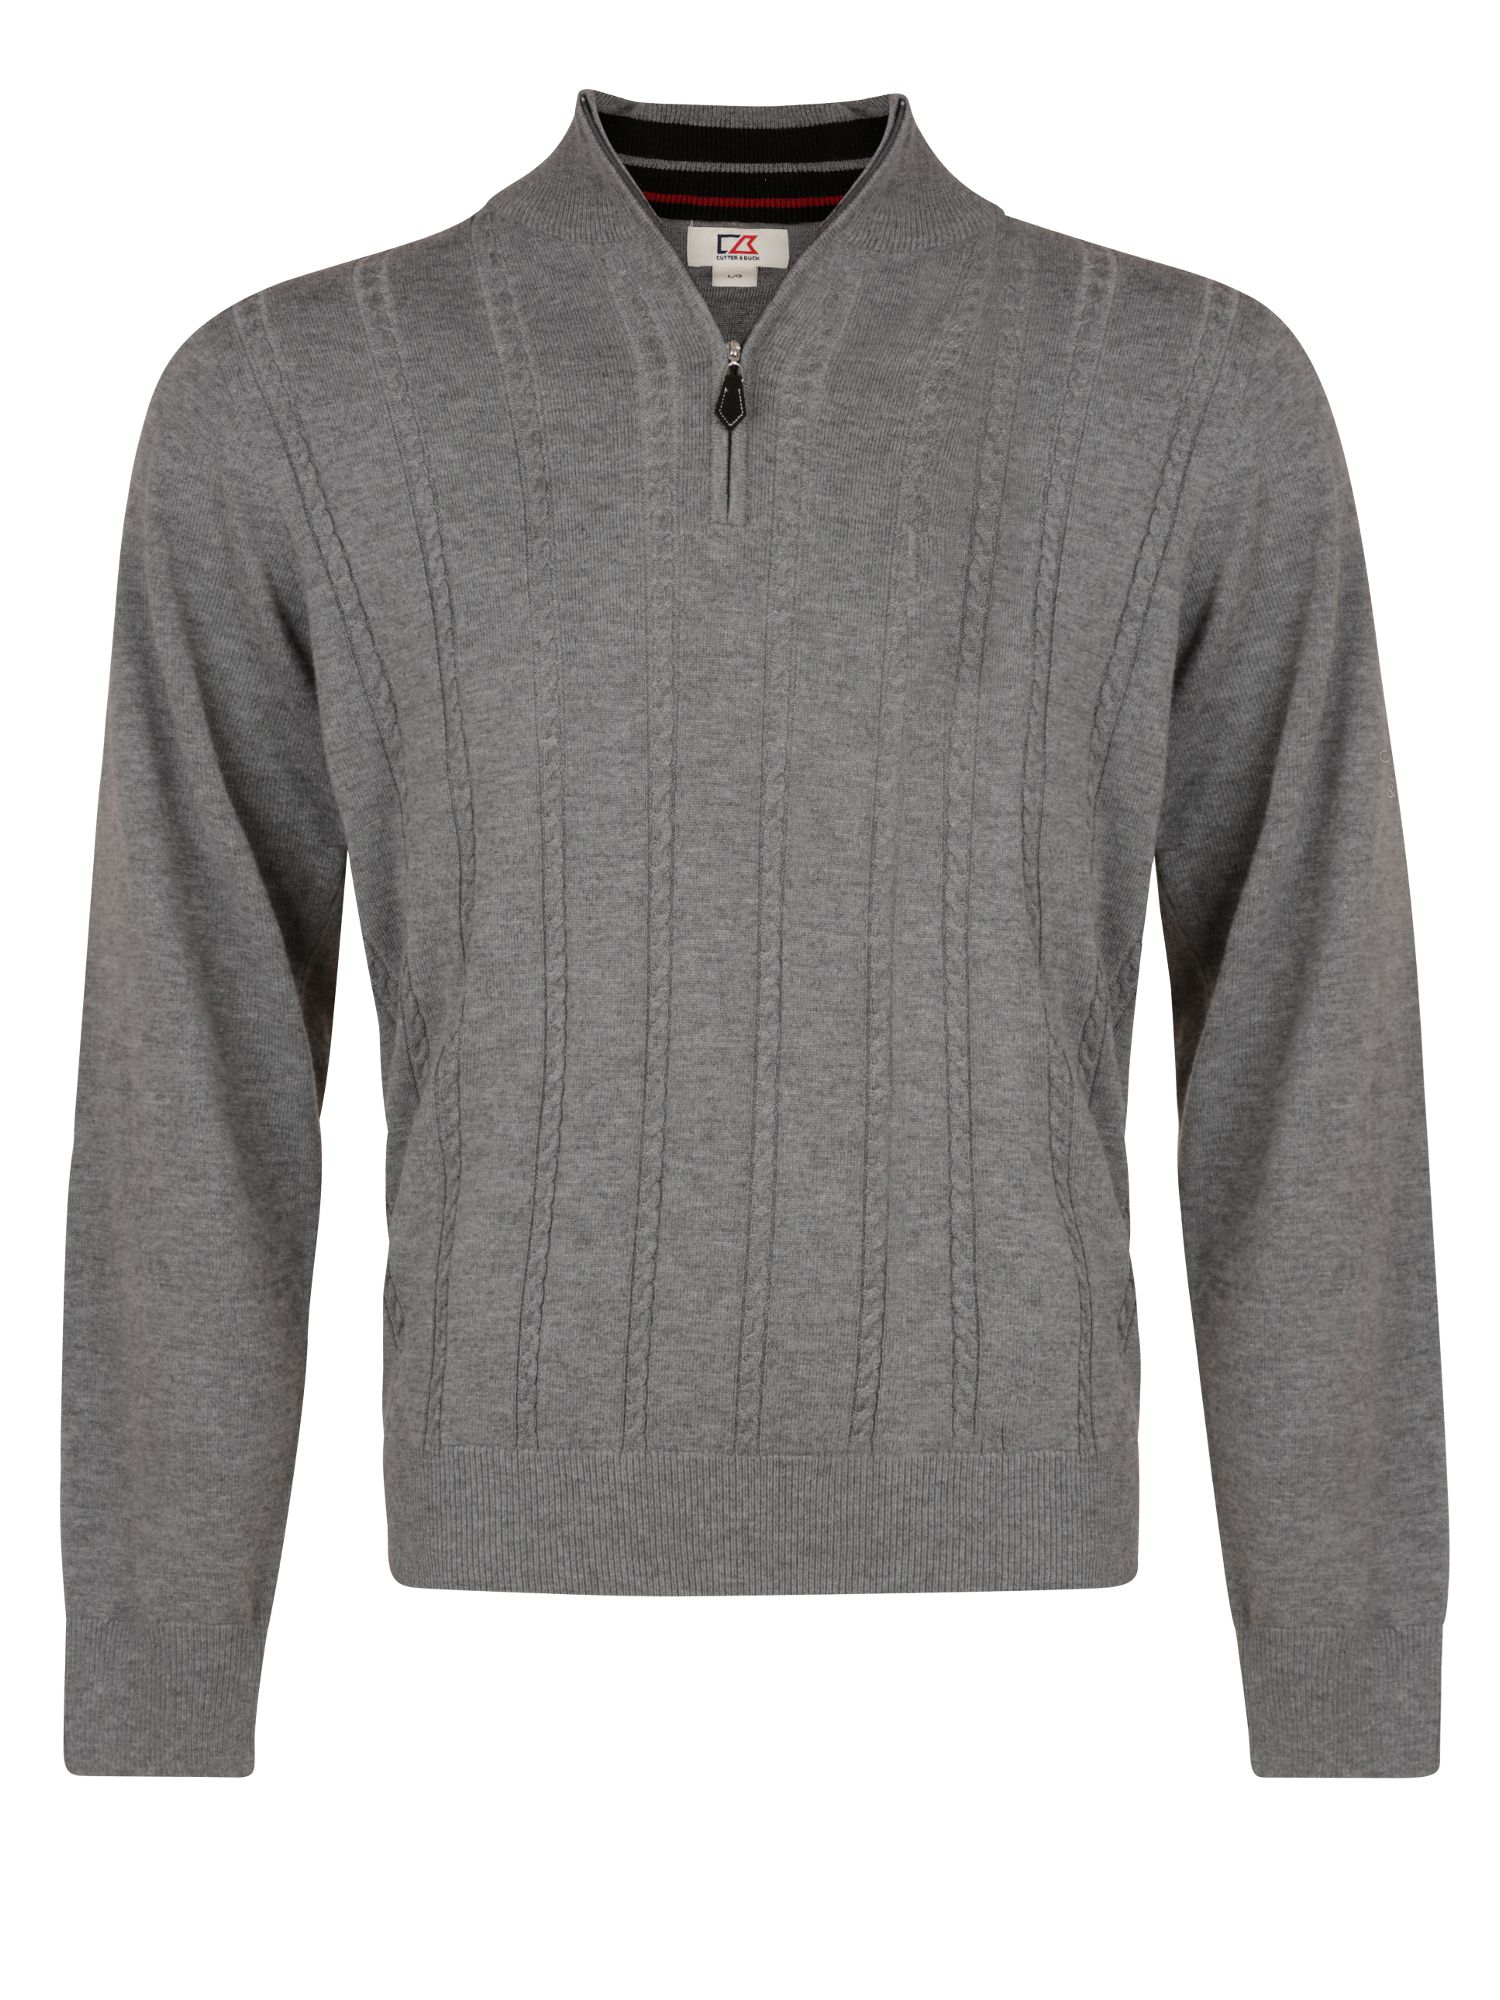 Cutter and Buck Men's Cutter and Buck Cable zip neck sweater, Charcoal